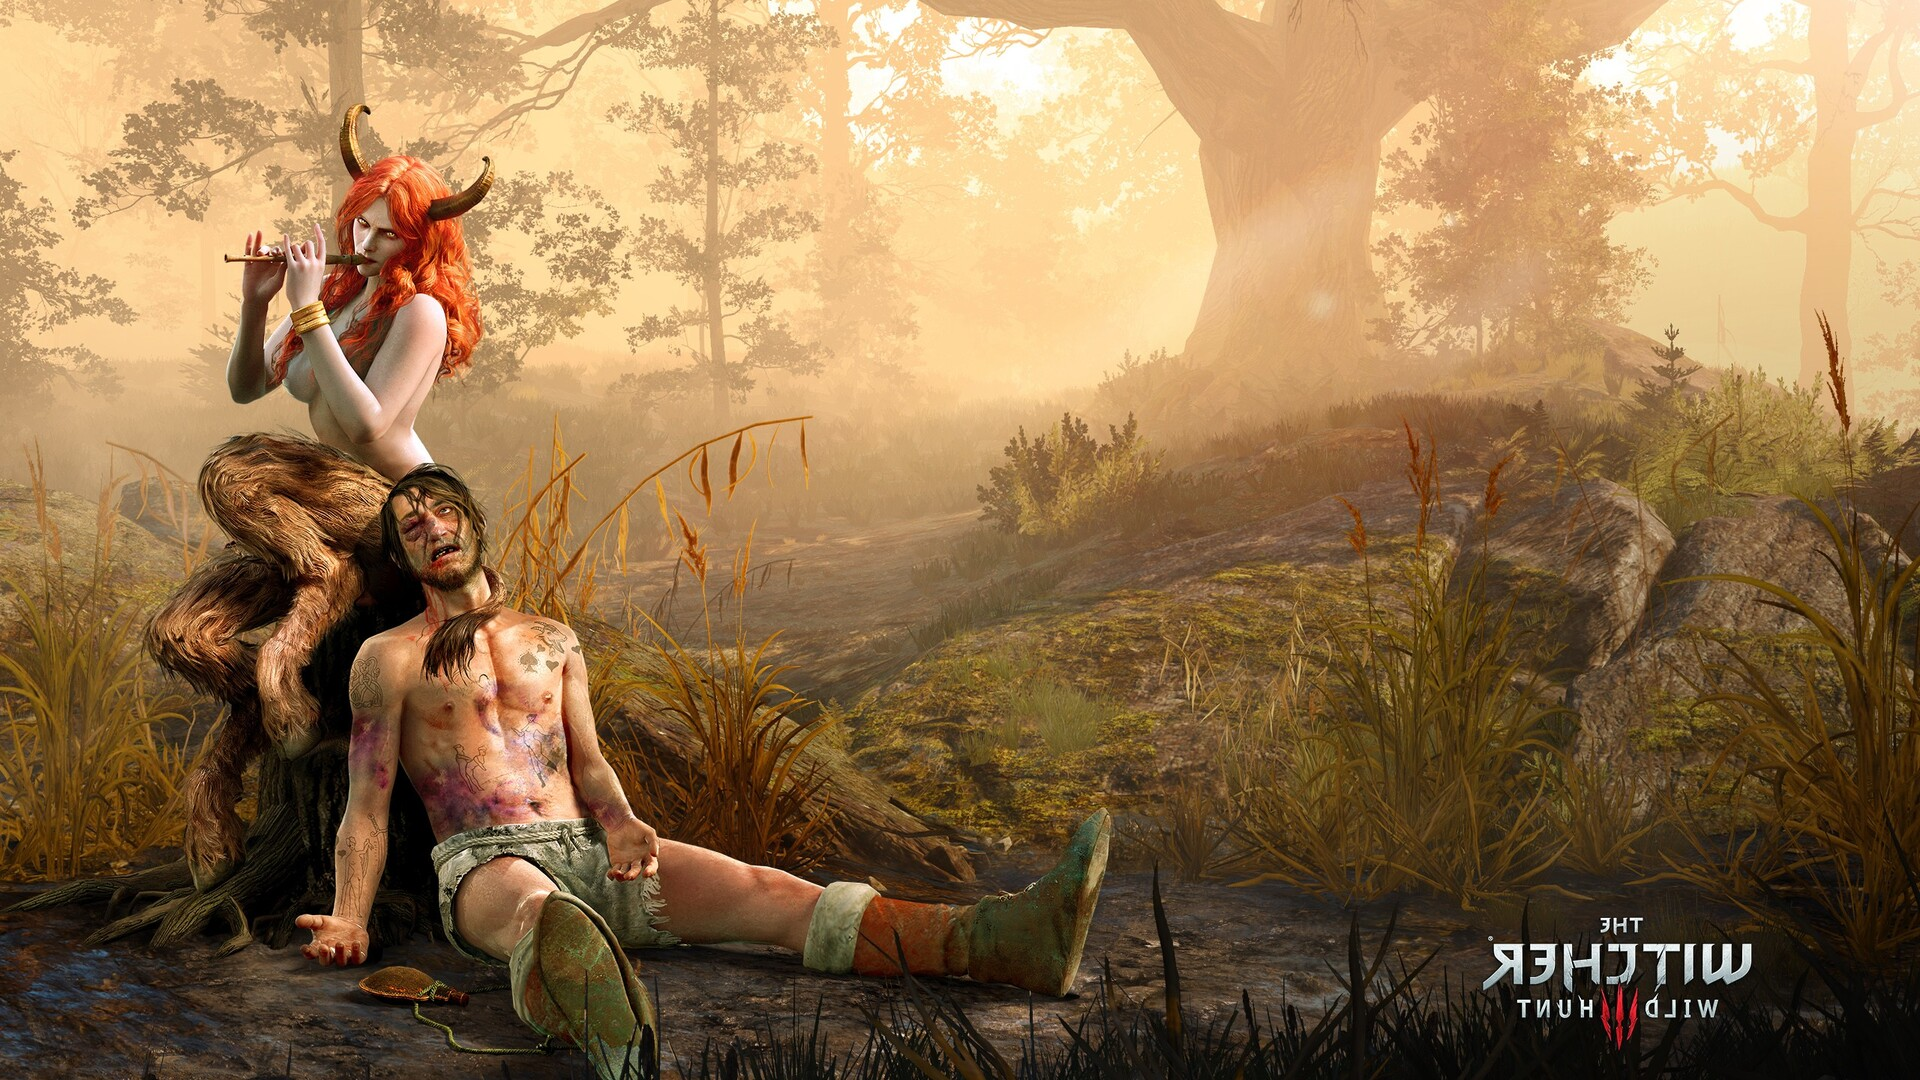 Cute Girl Hd Wallpapers 1080p Download 1920x1080 The Witcher 3 Wild Hunt 2 Laptop Full Hd 1080p